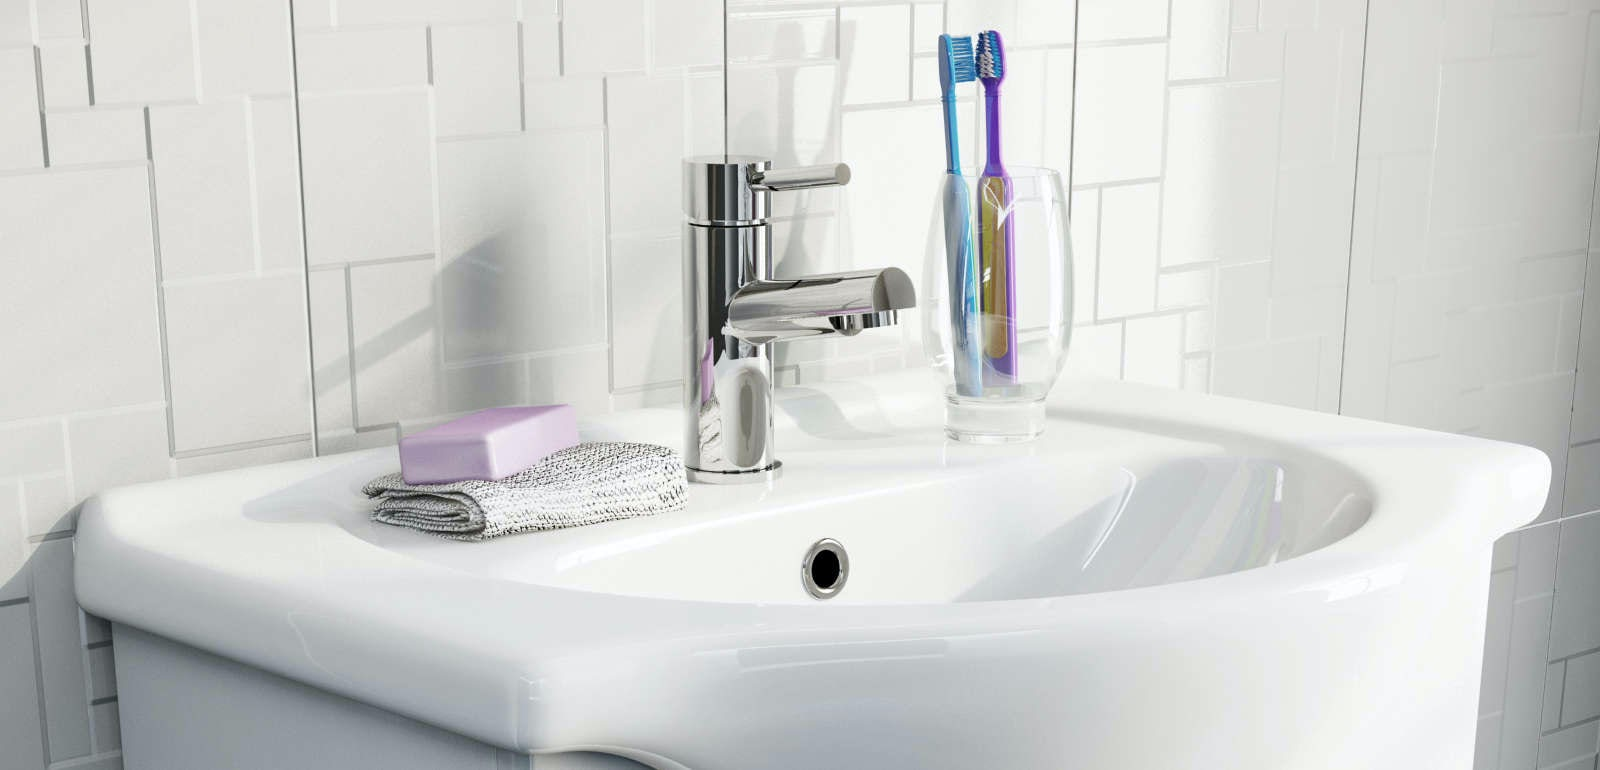 5 of the best: Bathroom sink cabinets